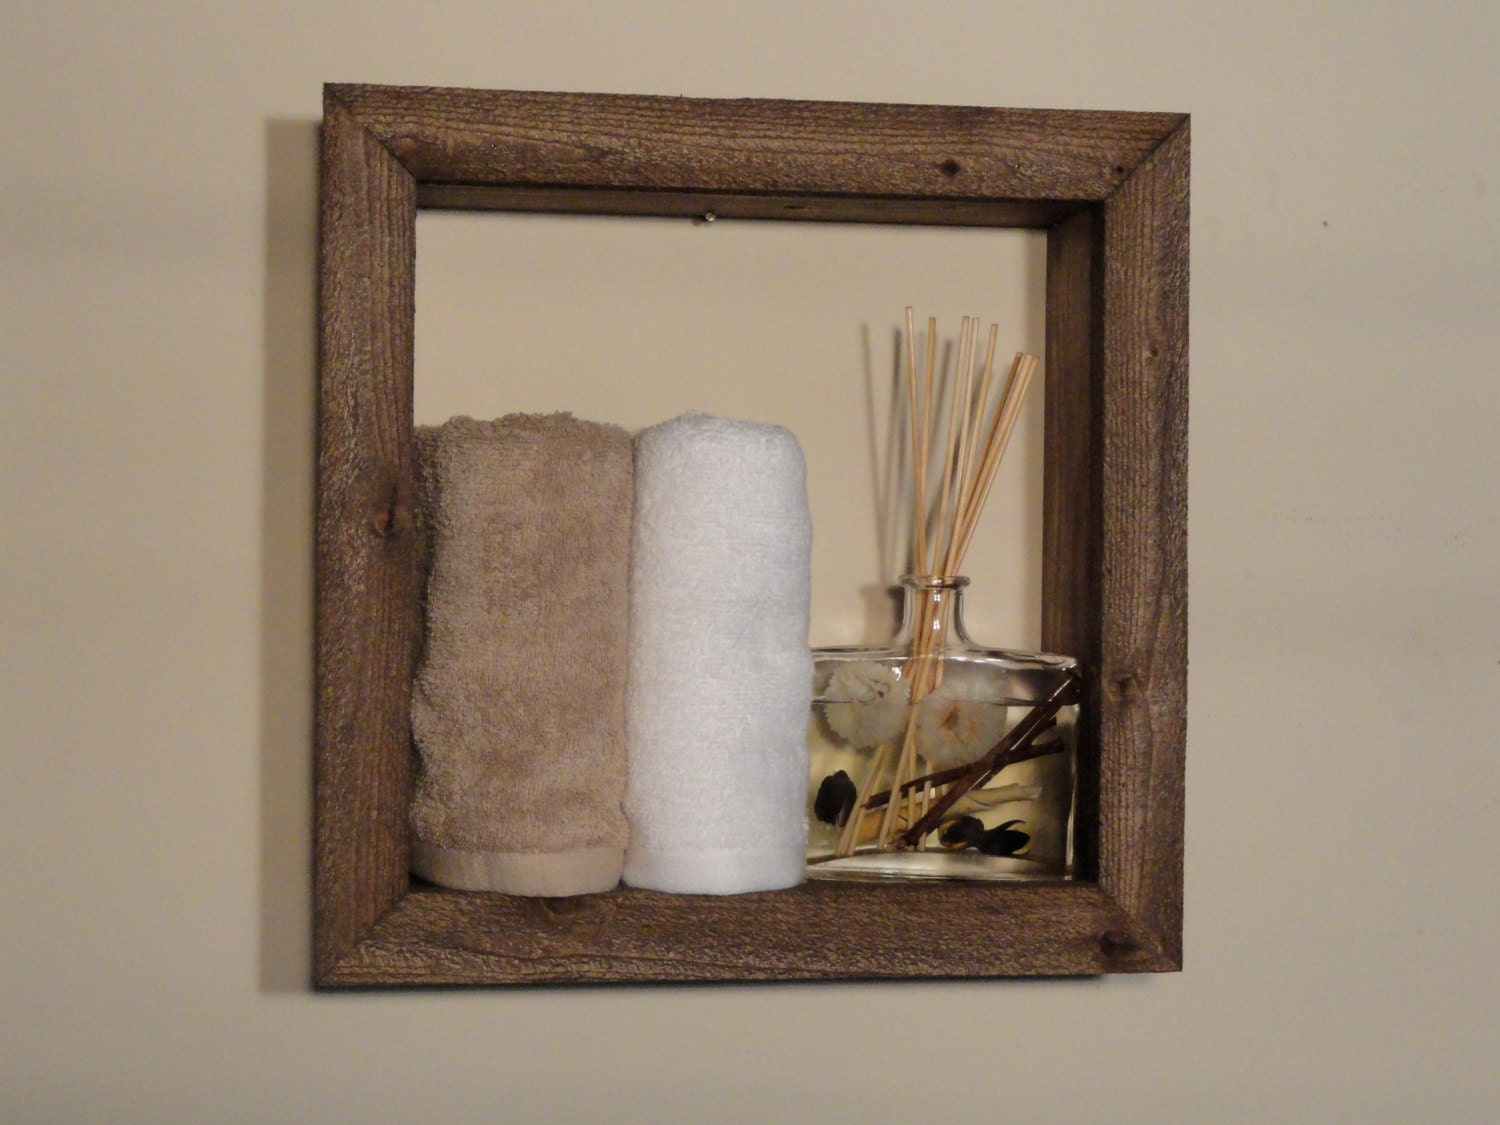 Wall Art Shadow Box : Rustic shadow box home decor wall by bacustomproducts